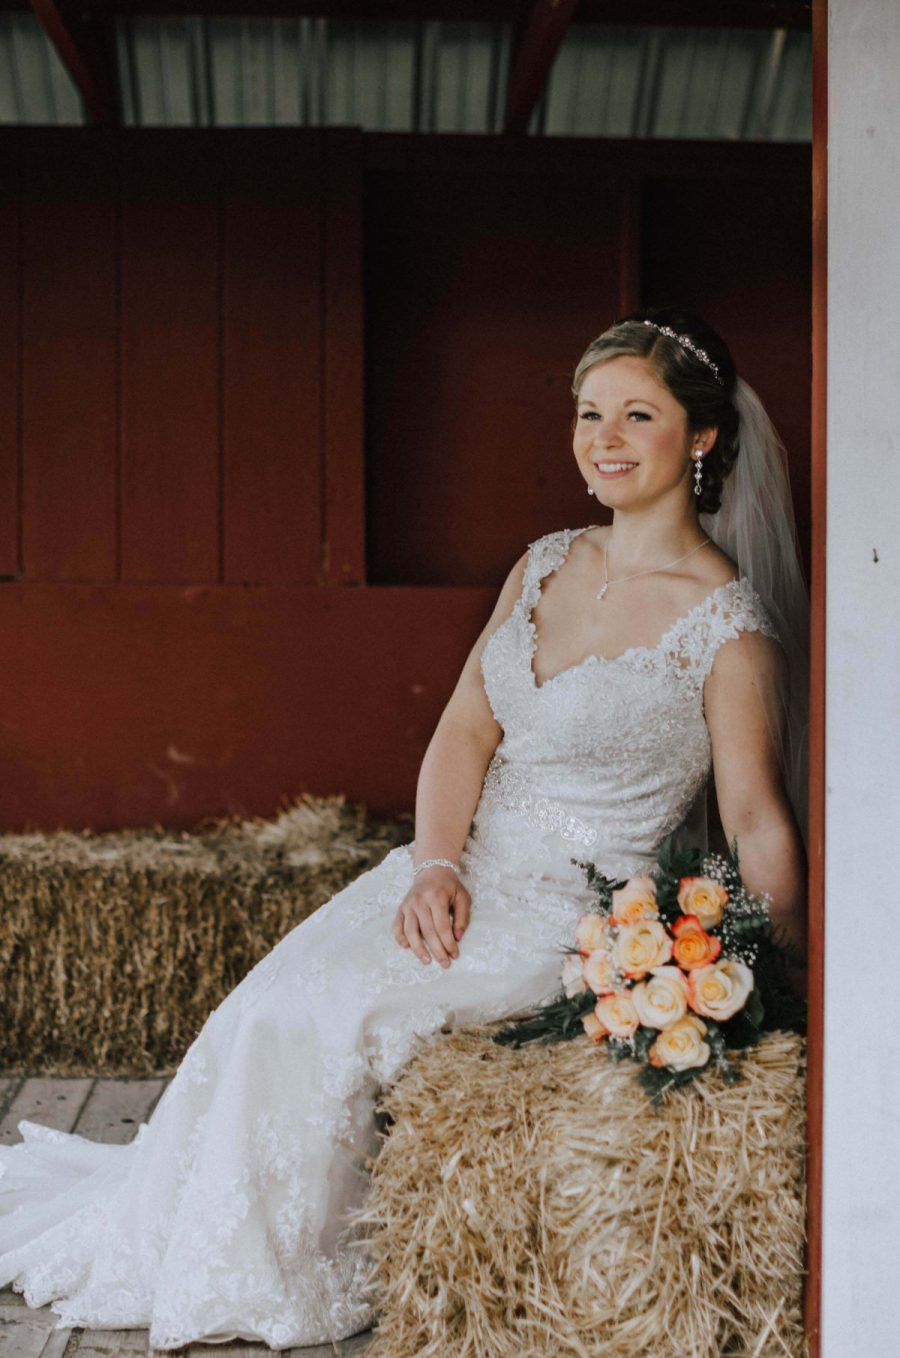 lake-stevens-barn-wedding, lake-stevens-wedding, carleton-farms, carleton-farms-wedding, carelton-farms-wedding-photos, seattle-wedding-photographer, wedding-photographer, barn-wedding, wedding-photos,